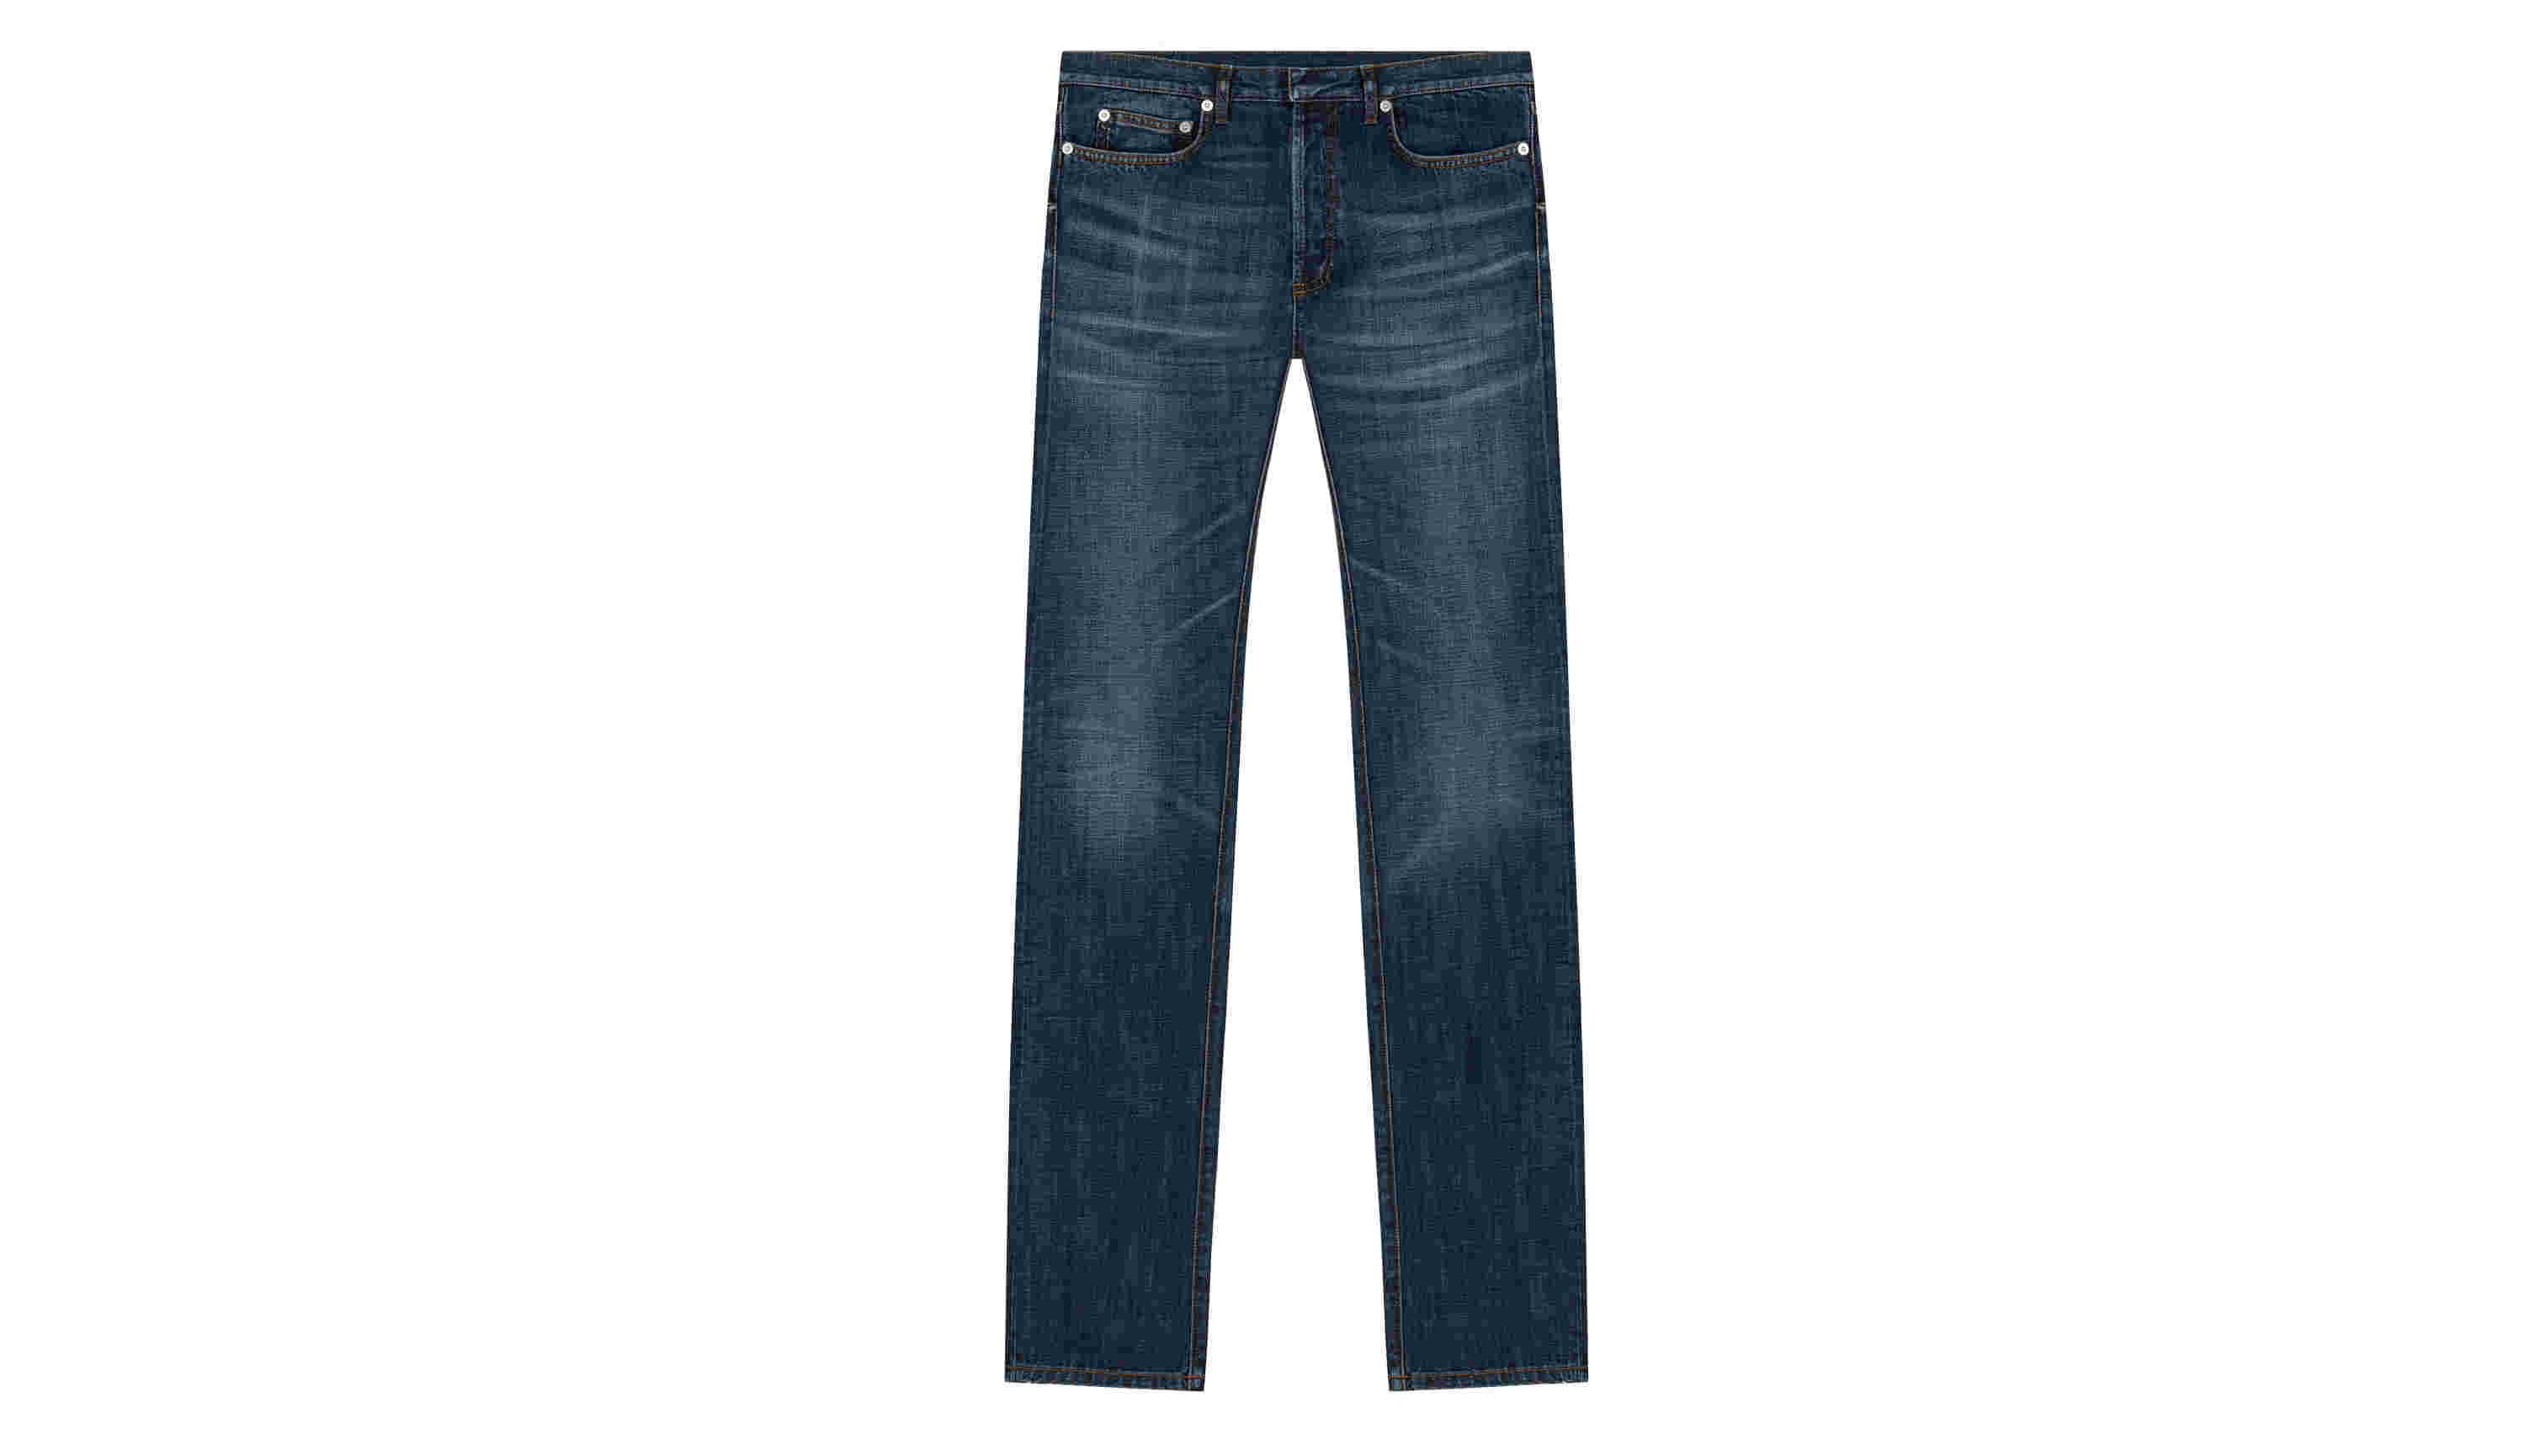 Jean in Natural Fade Effect Blue Cotton Denim